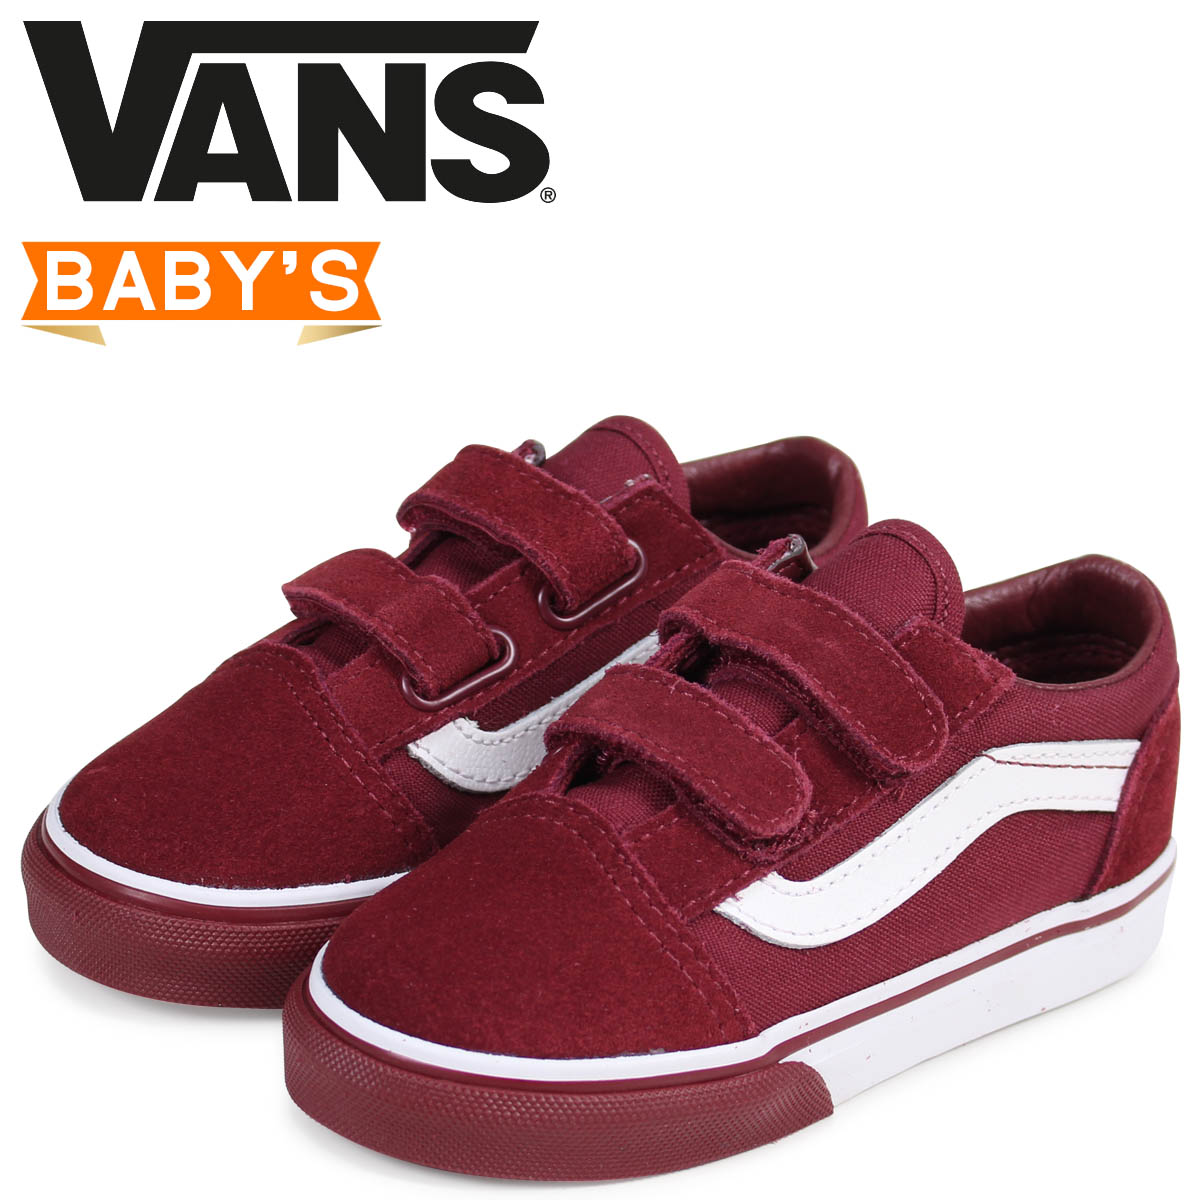 c2422d854f7770 Vans old school sneakers baby VANS station wagons TODDLER OLD SKOOL VELCRO  VN0A344KQ7H dark red  2 16 Shinnyu load